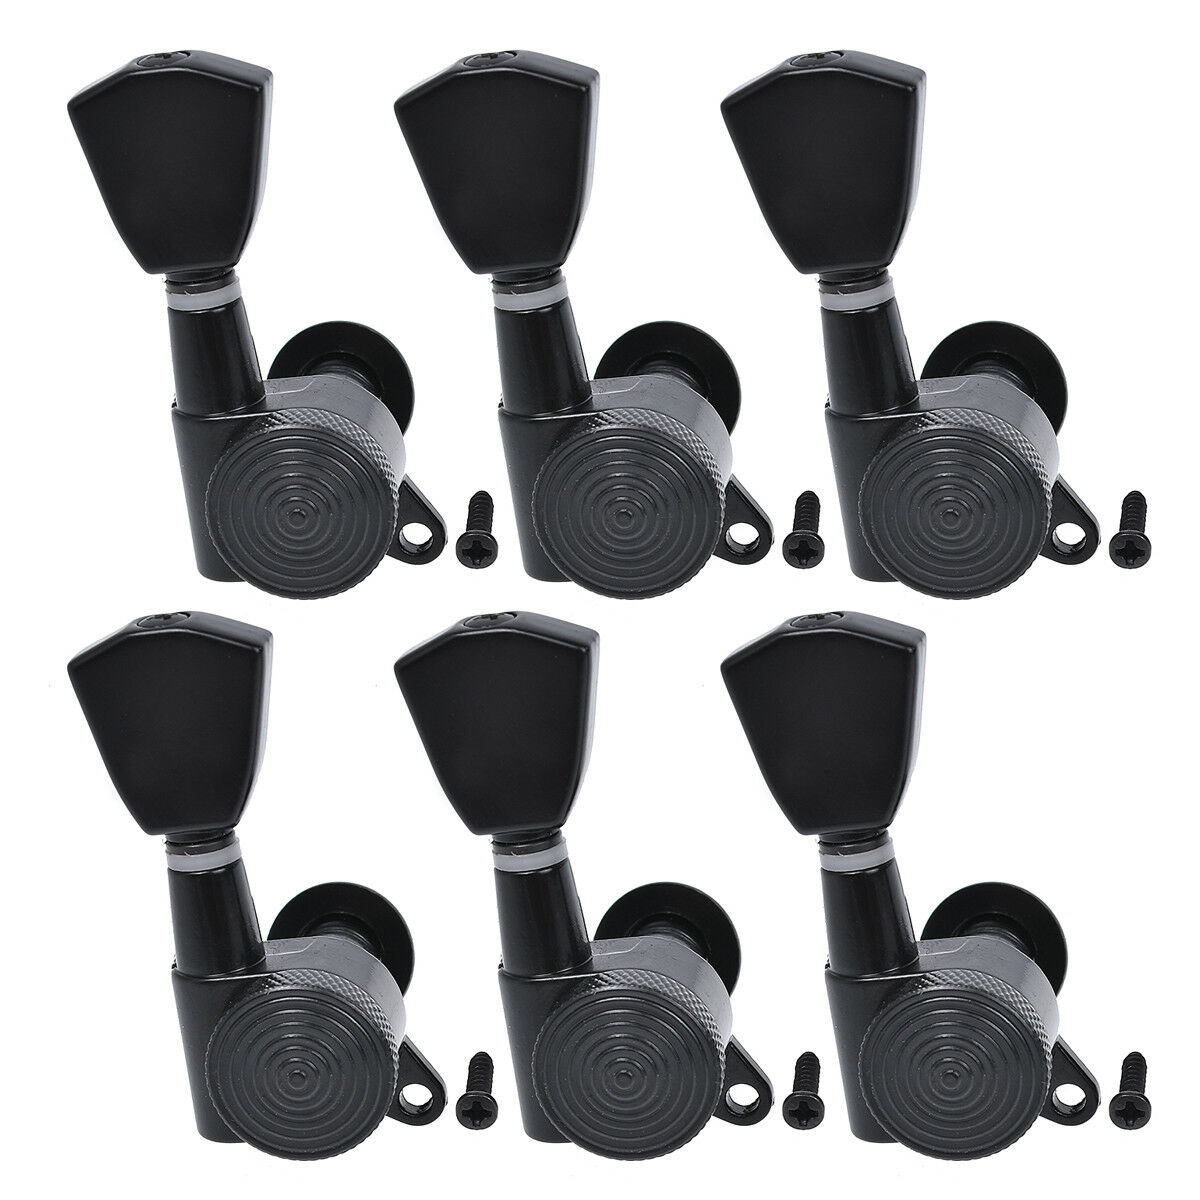 electric guitar string tuning pegs locking tuners keys machine heads black 6r 634458758291 ebay. Black Bedroom Furniture Sets. Home Design Ideas